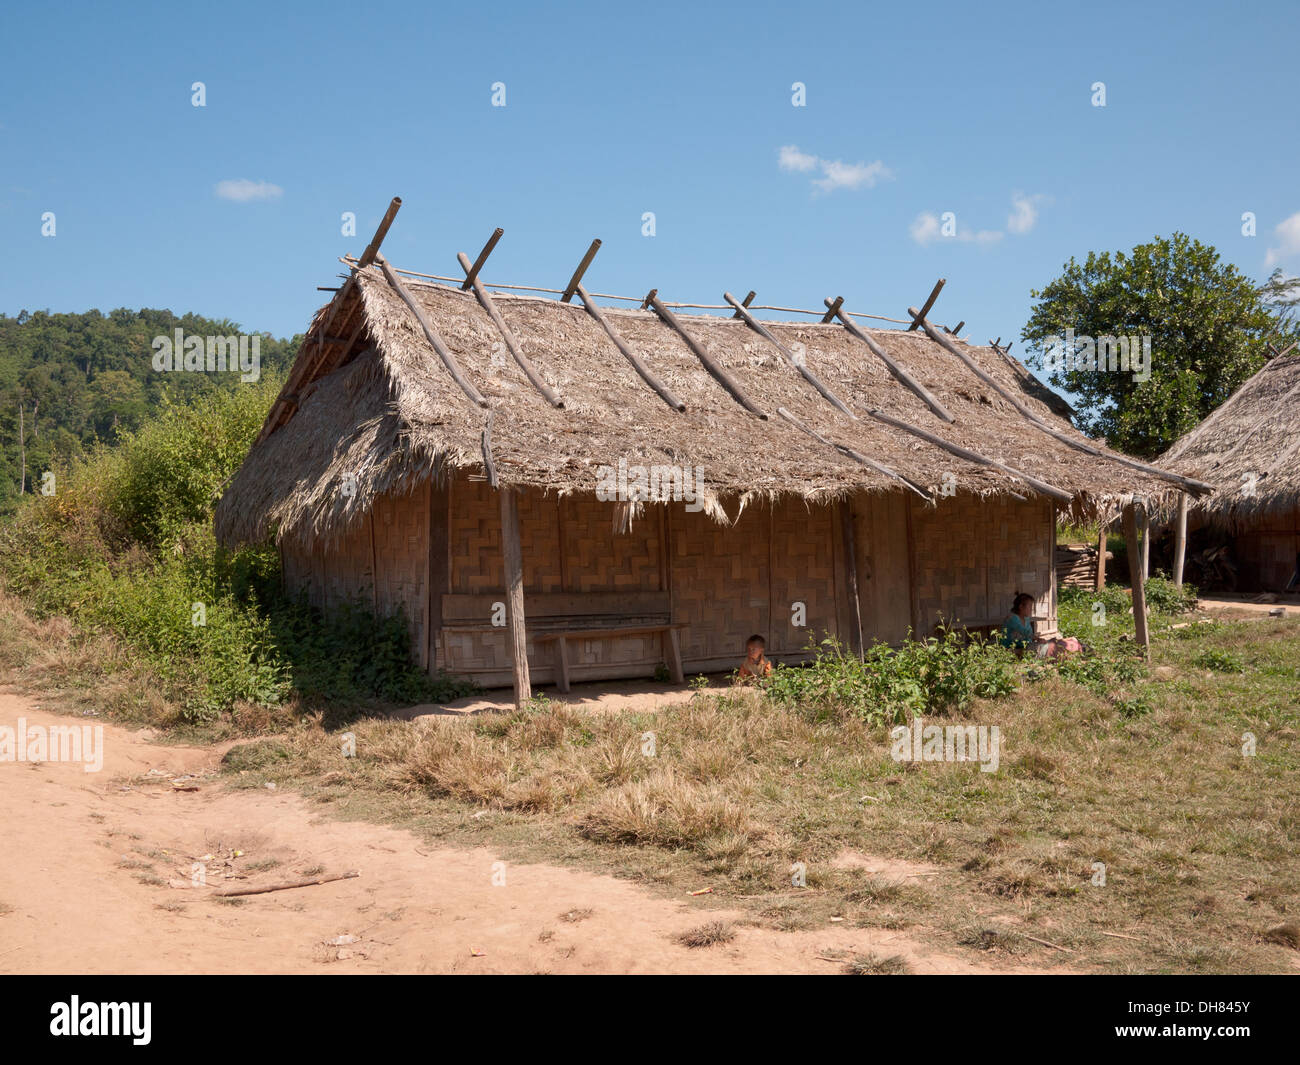 A thatched hut in a village at the start of The Gibbon Experience in Bokeo Nature Reserve, Laos. - Stock Image